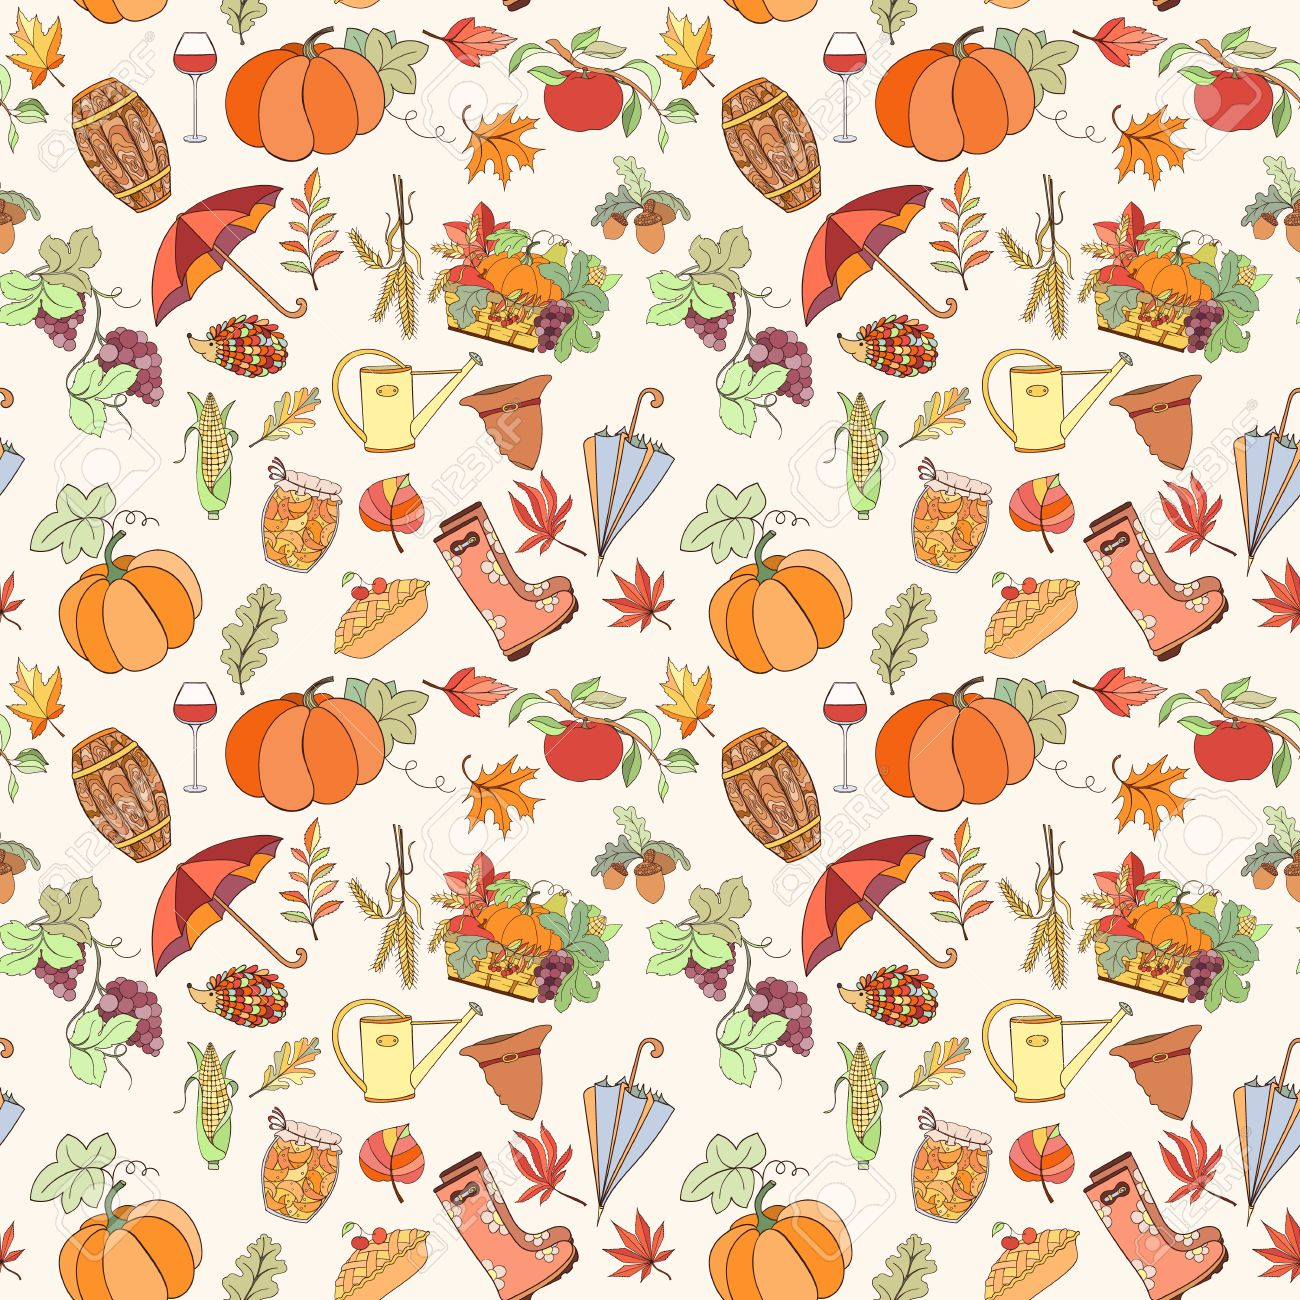 autumn seamless pattern can be used for wallpaper, website